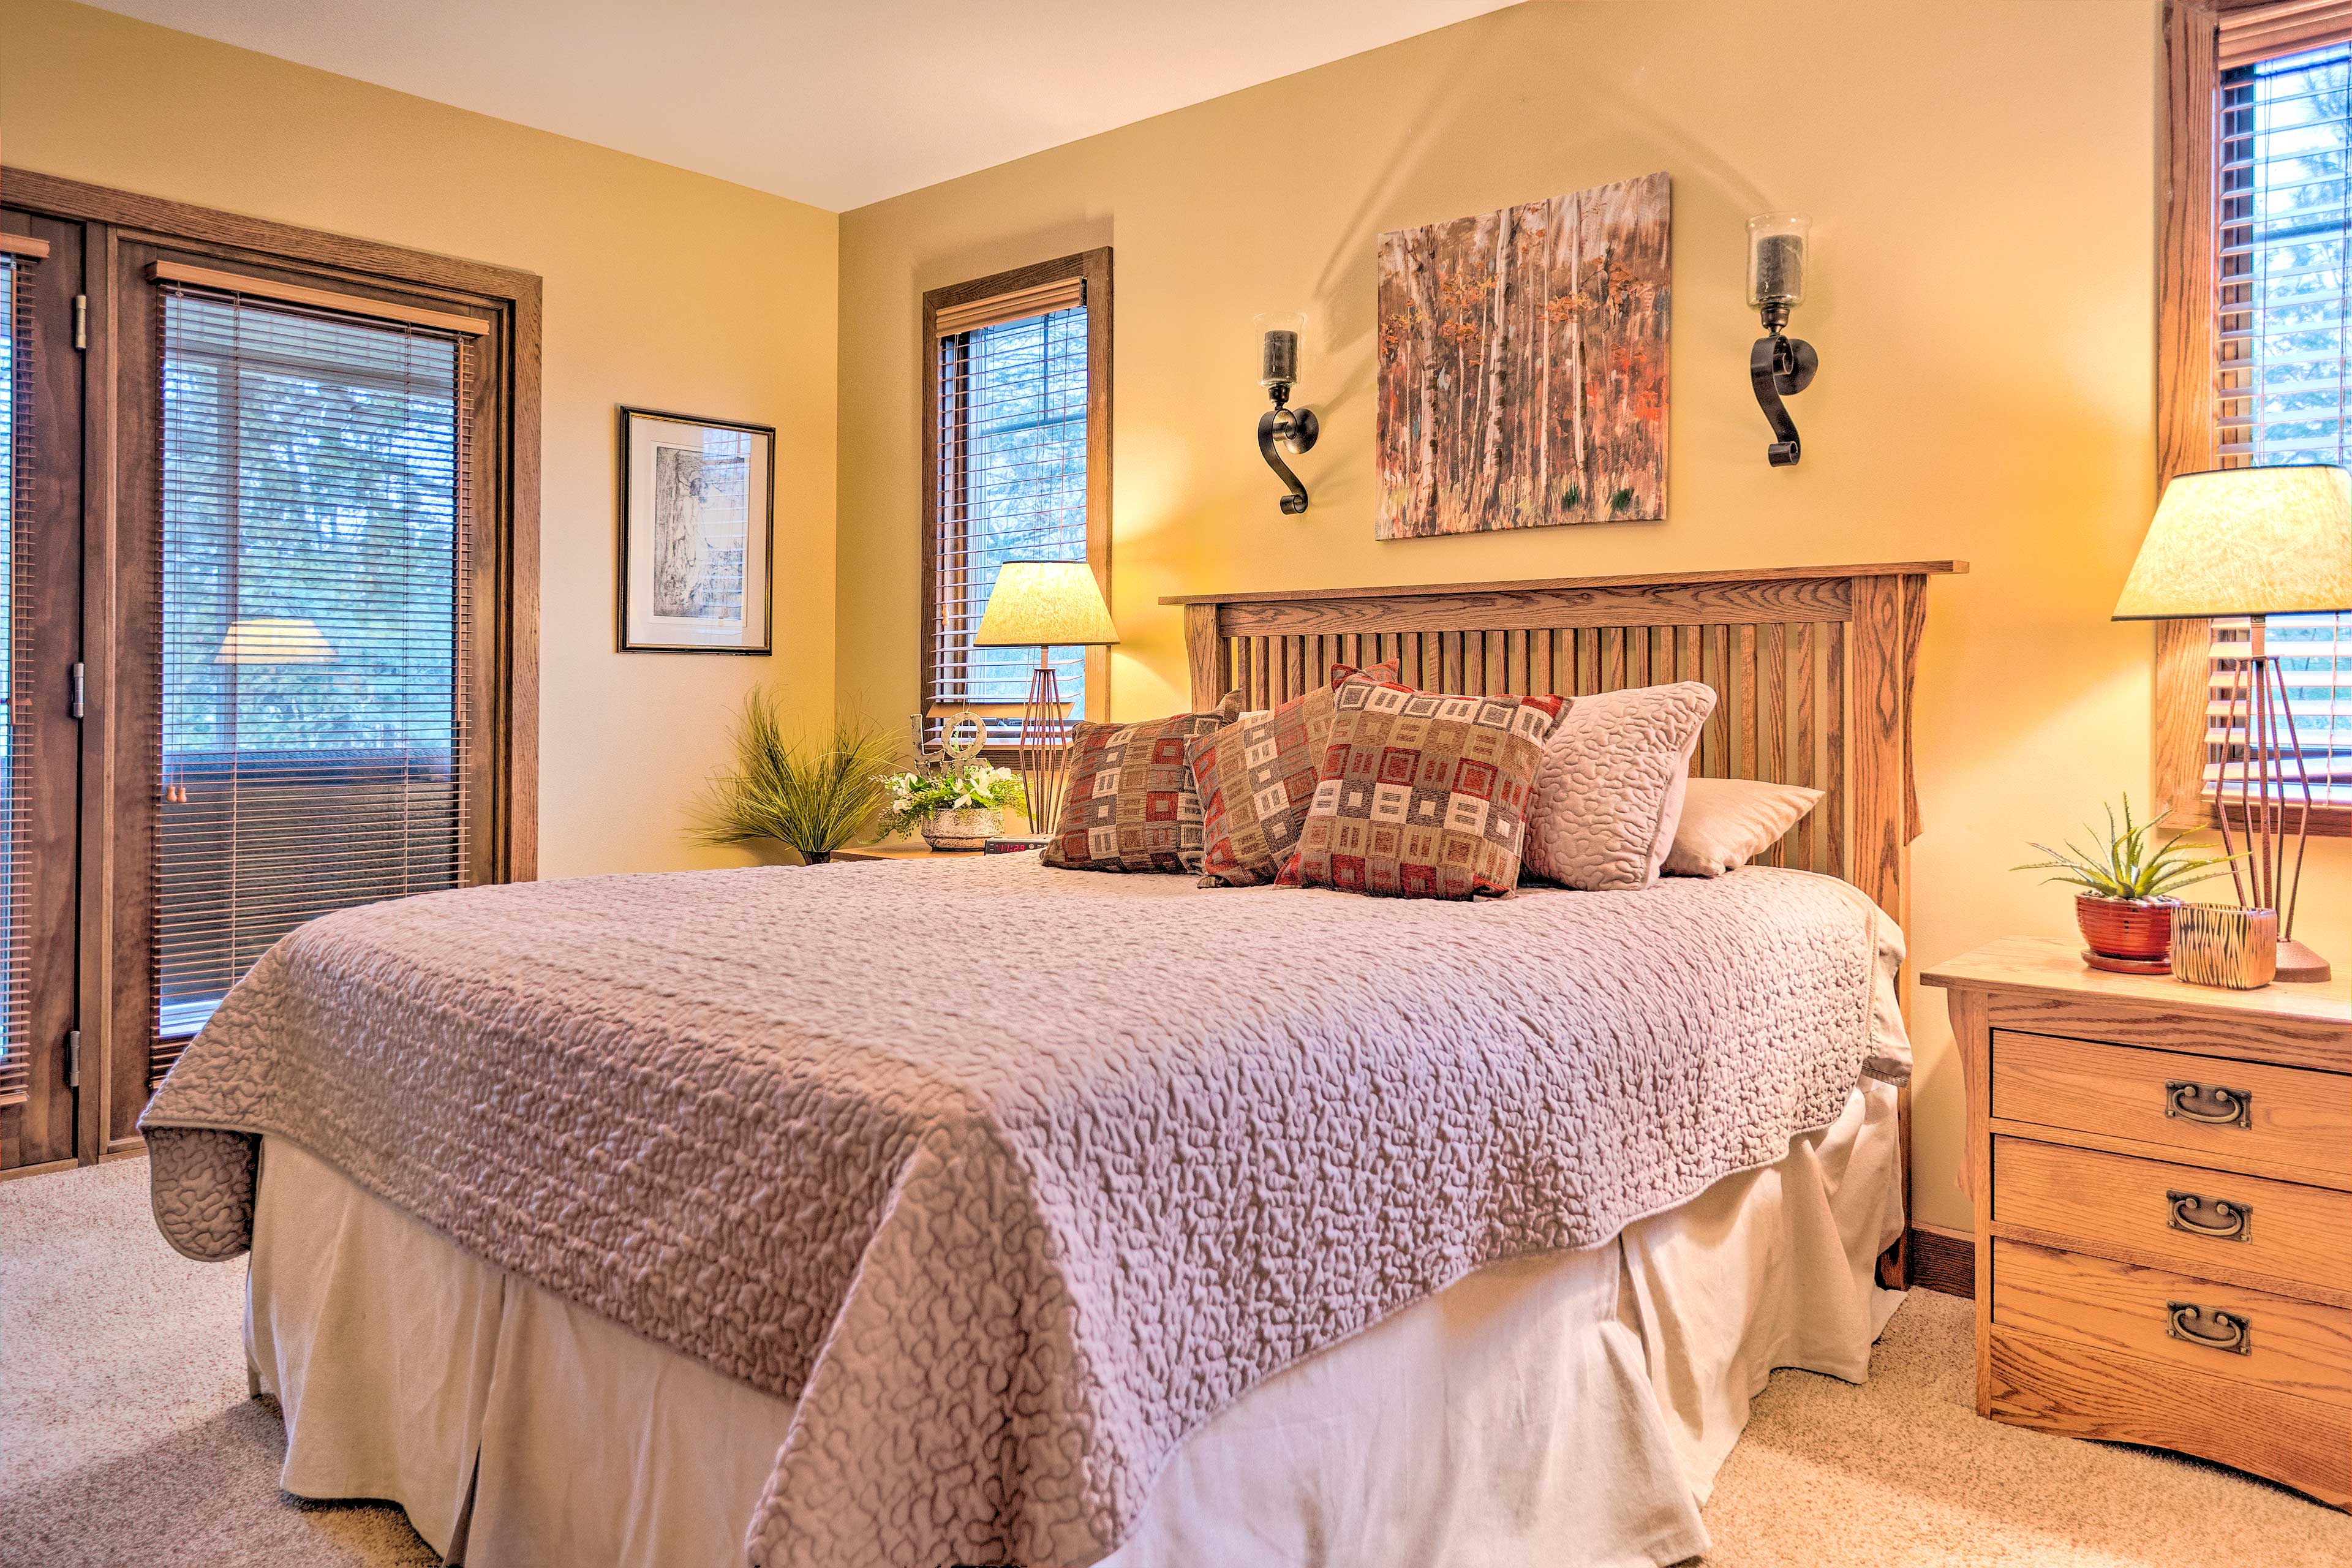 The master bedroom features a queen-sized bed.